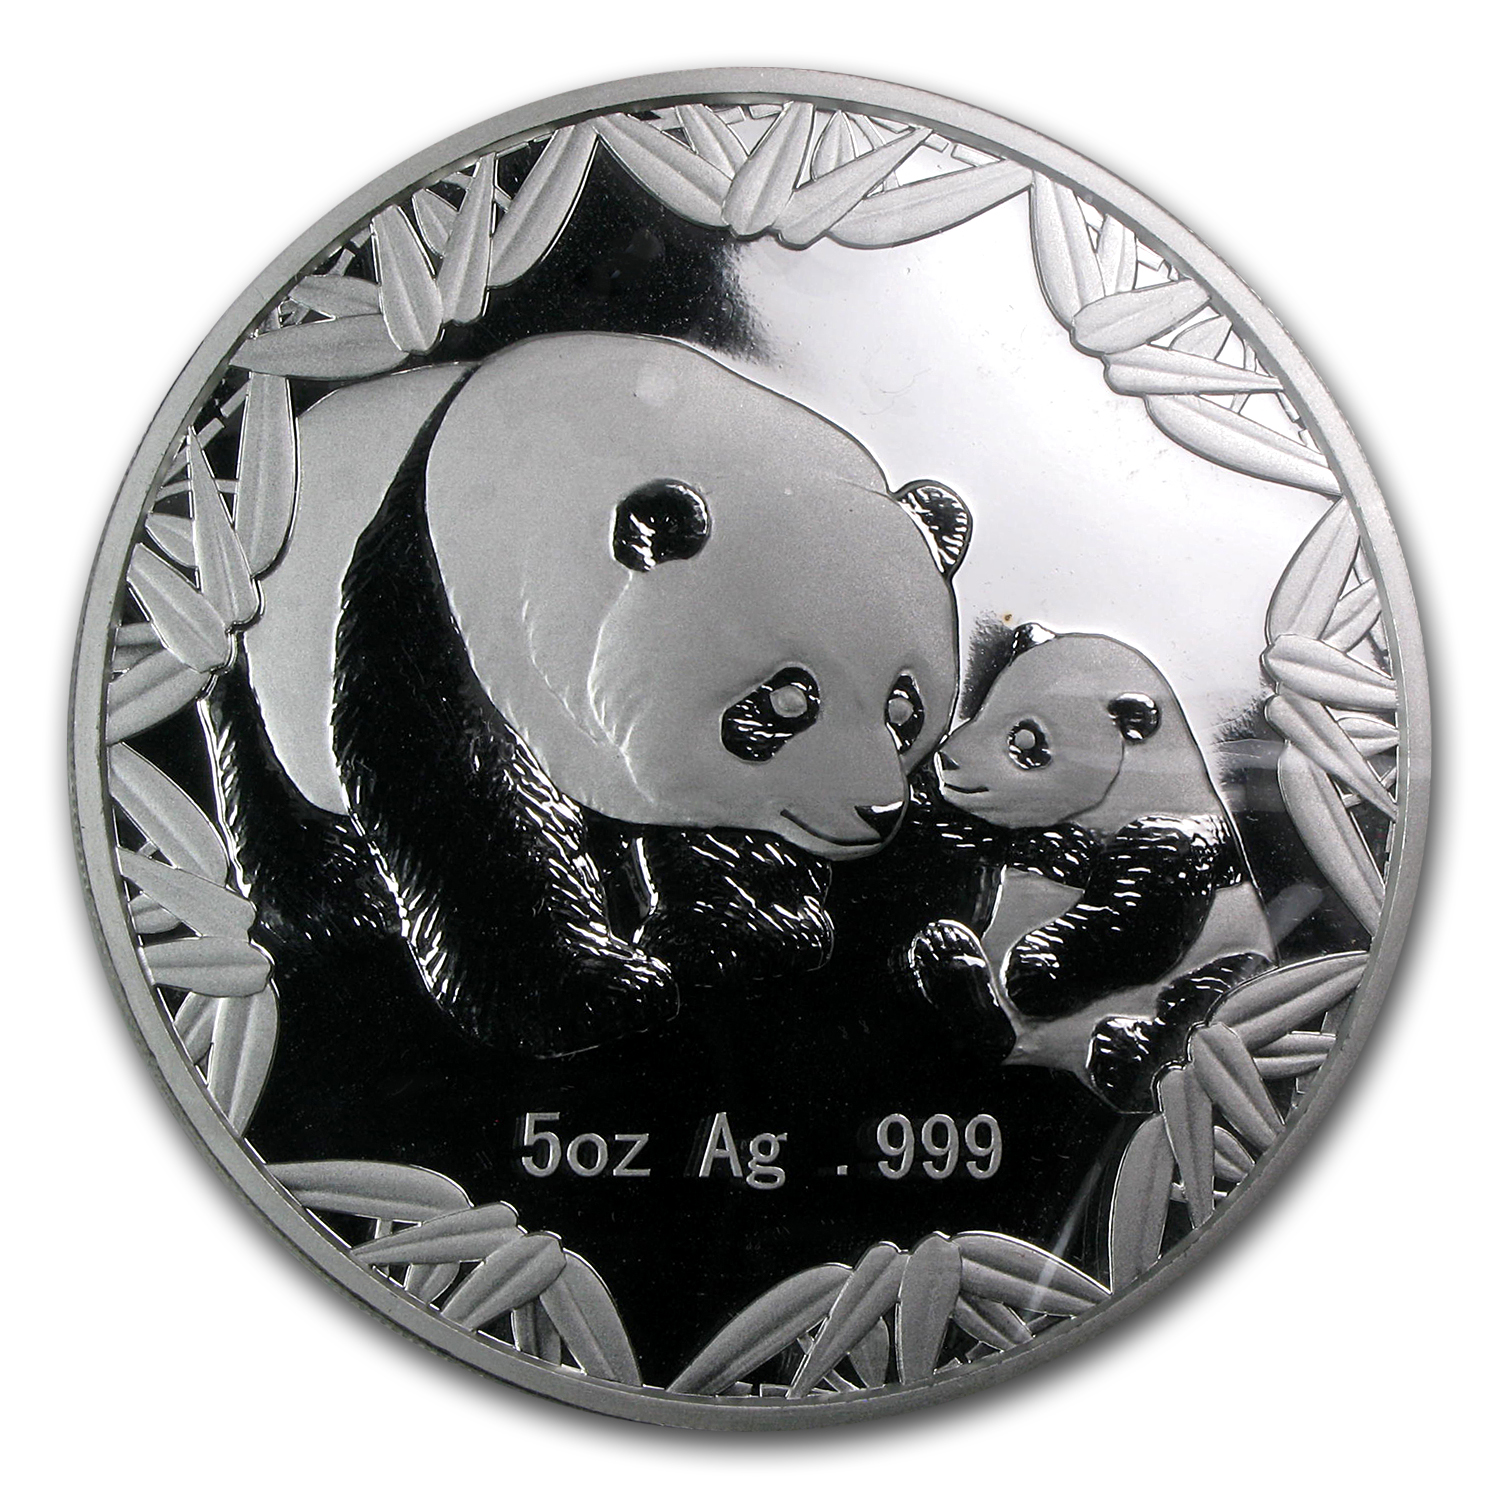 2012 5 oz Silver Chinese Panda Philadelphia ANA Coin Show Medal